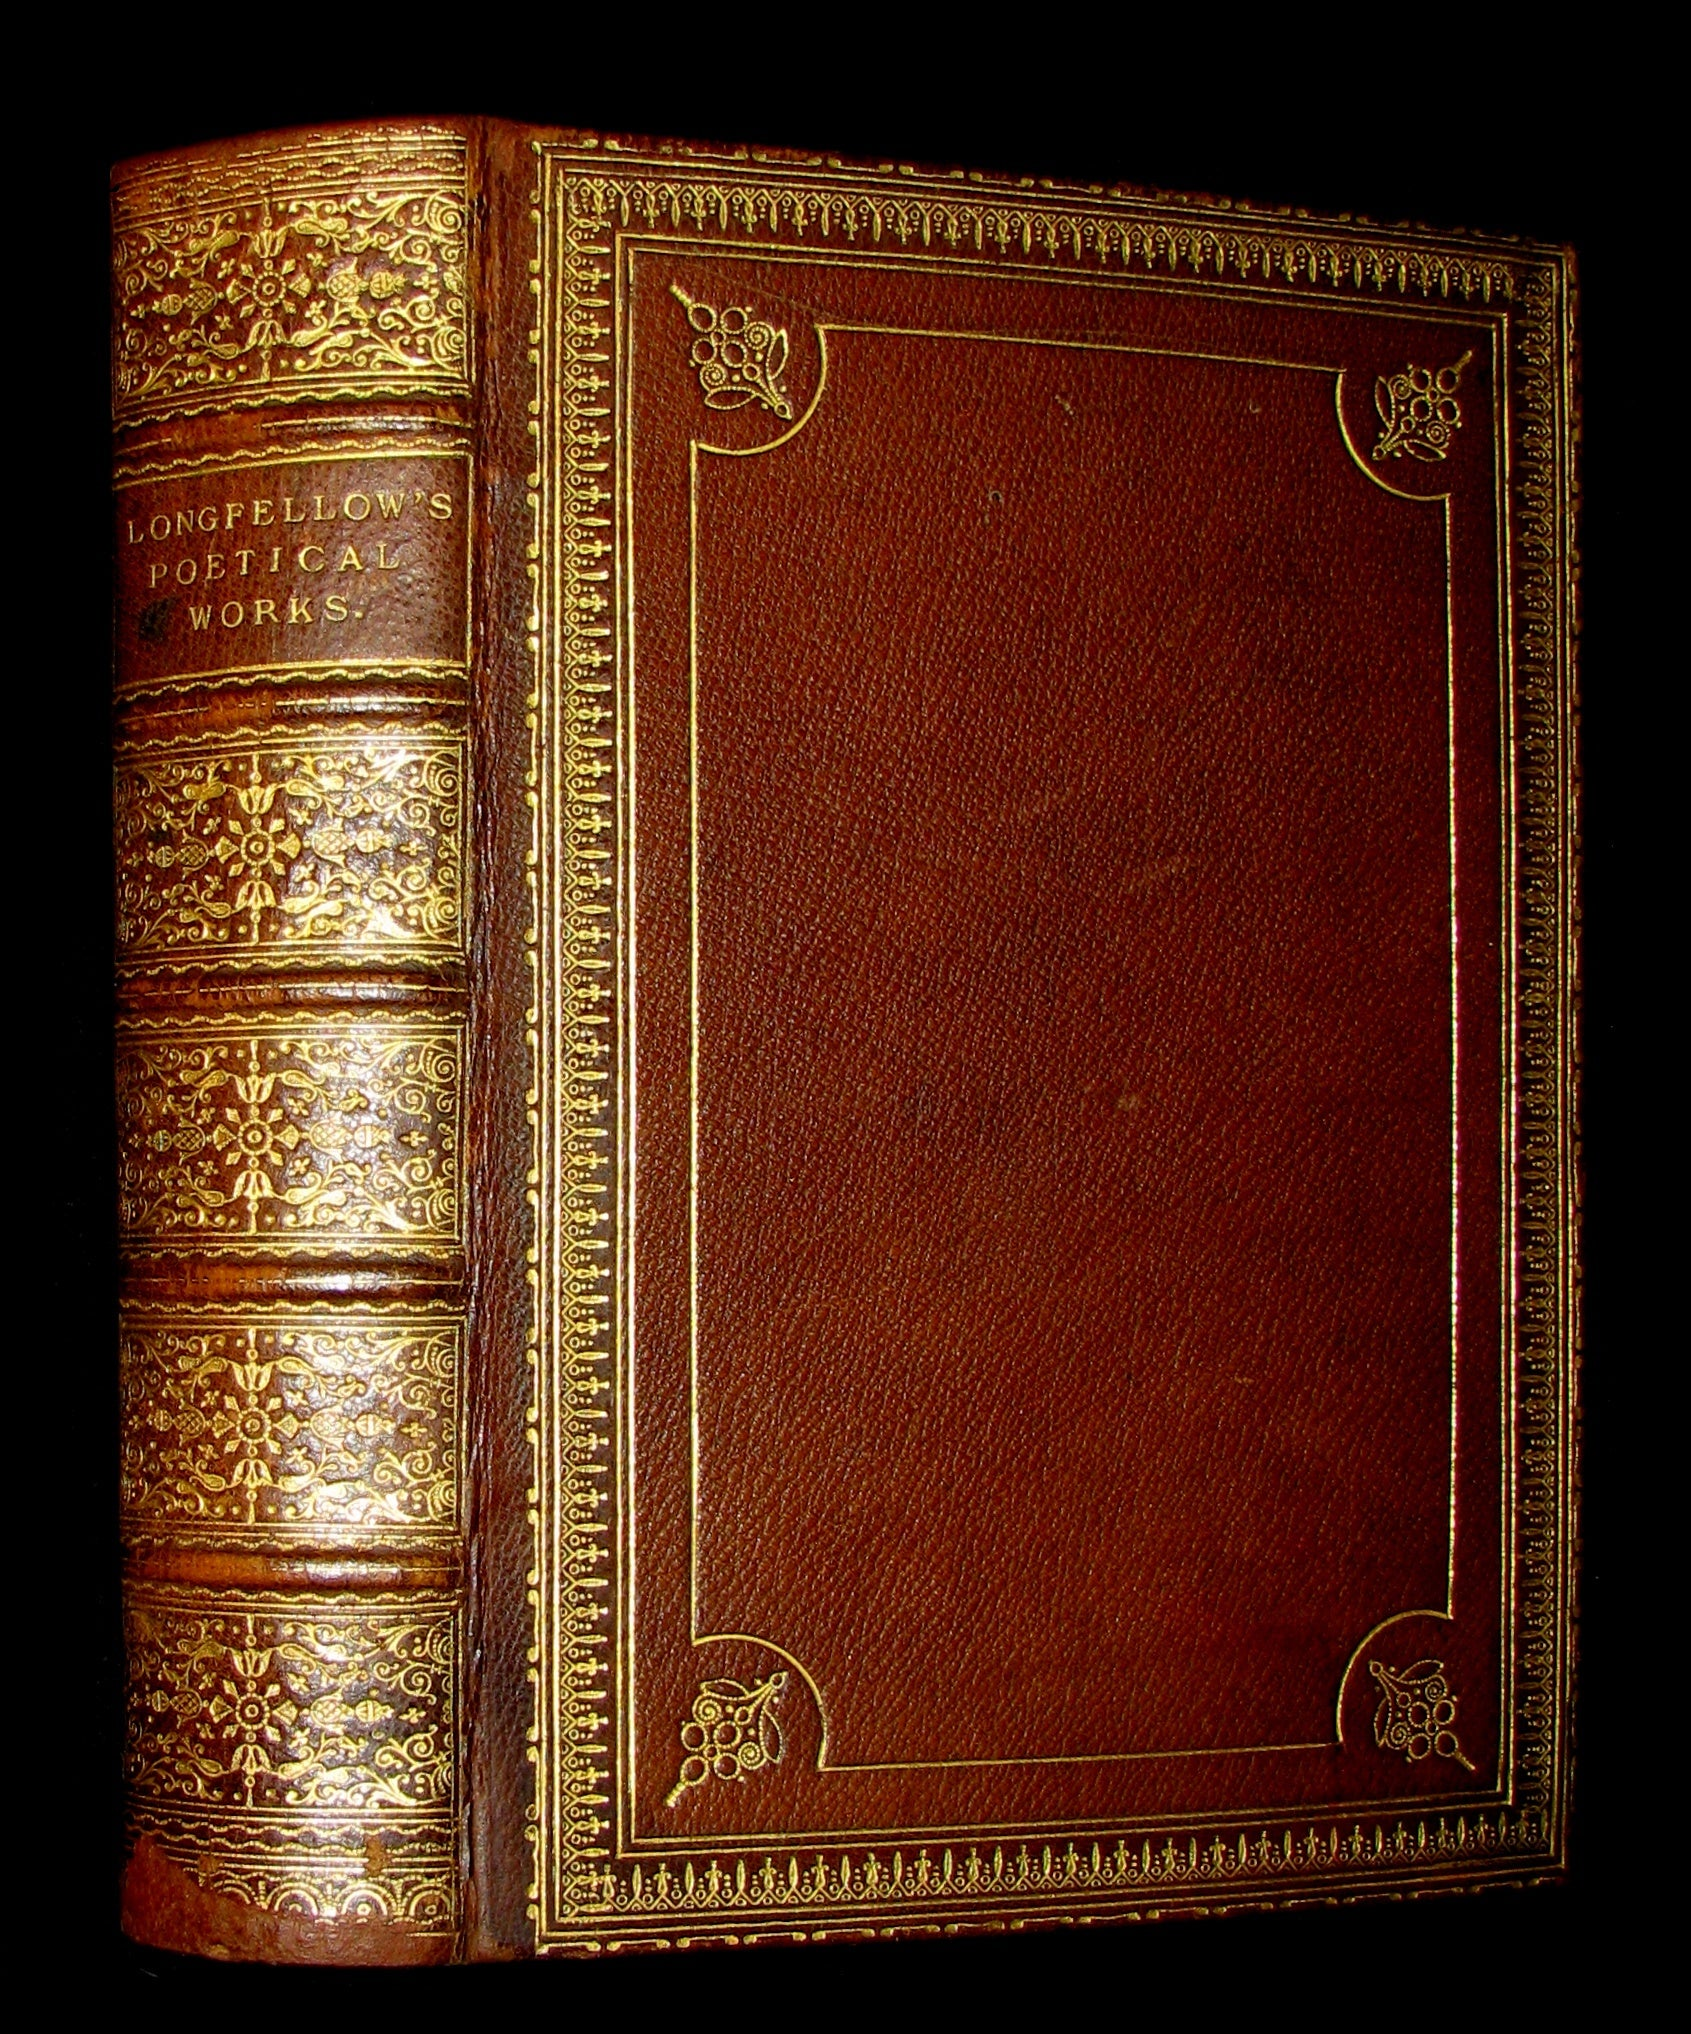 1877 Rare Victorian Book -  The Poetical Works of Longfellow Illustrated by Sir John Gilbert.